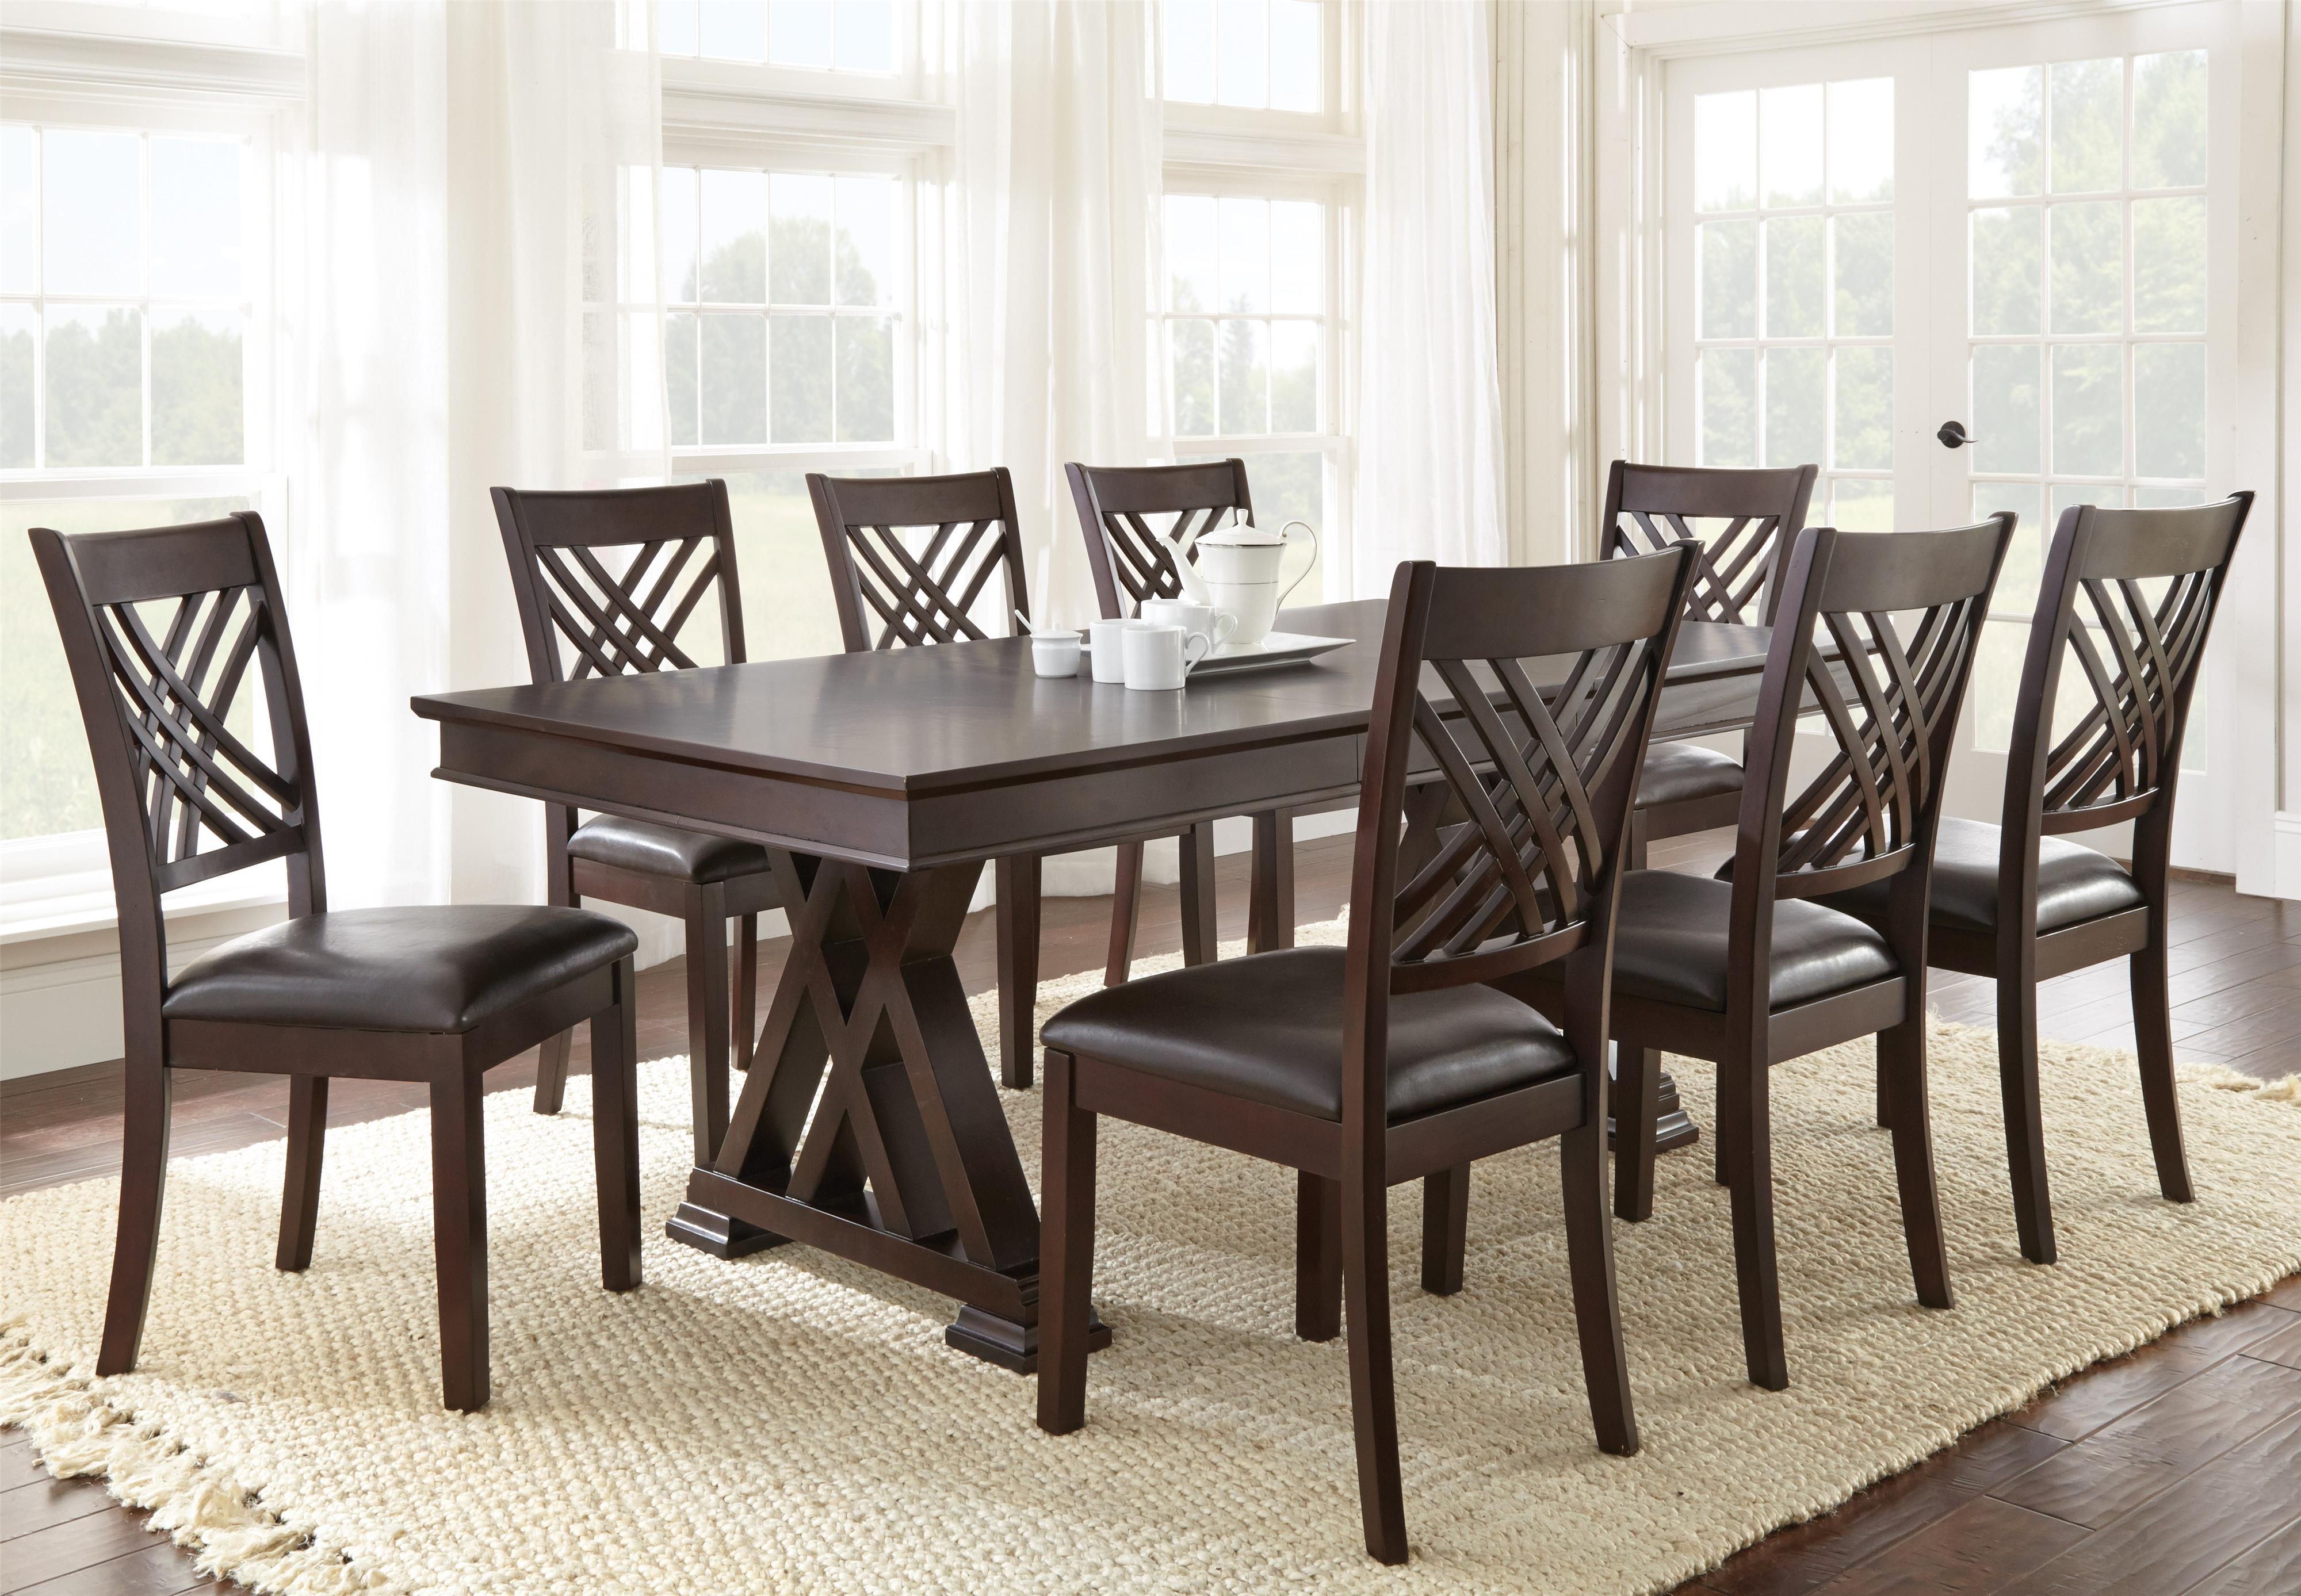 Adrian 9 Piece Table & Chair Set by Vendor 3985 at Becker Furniture